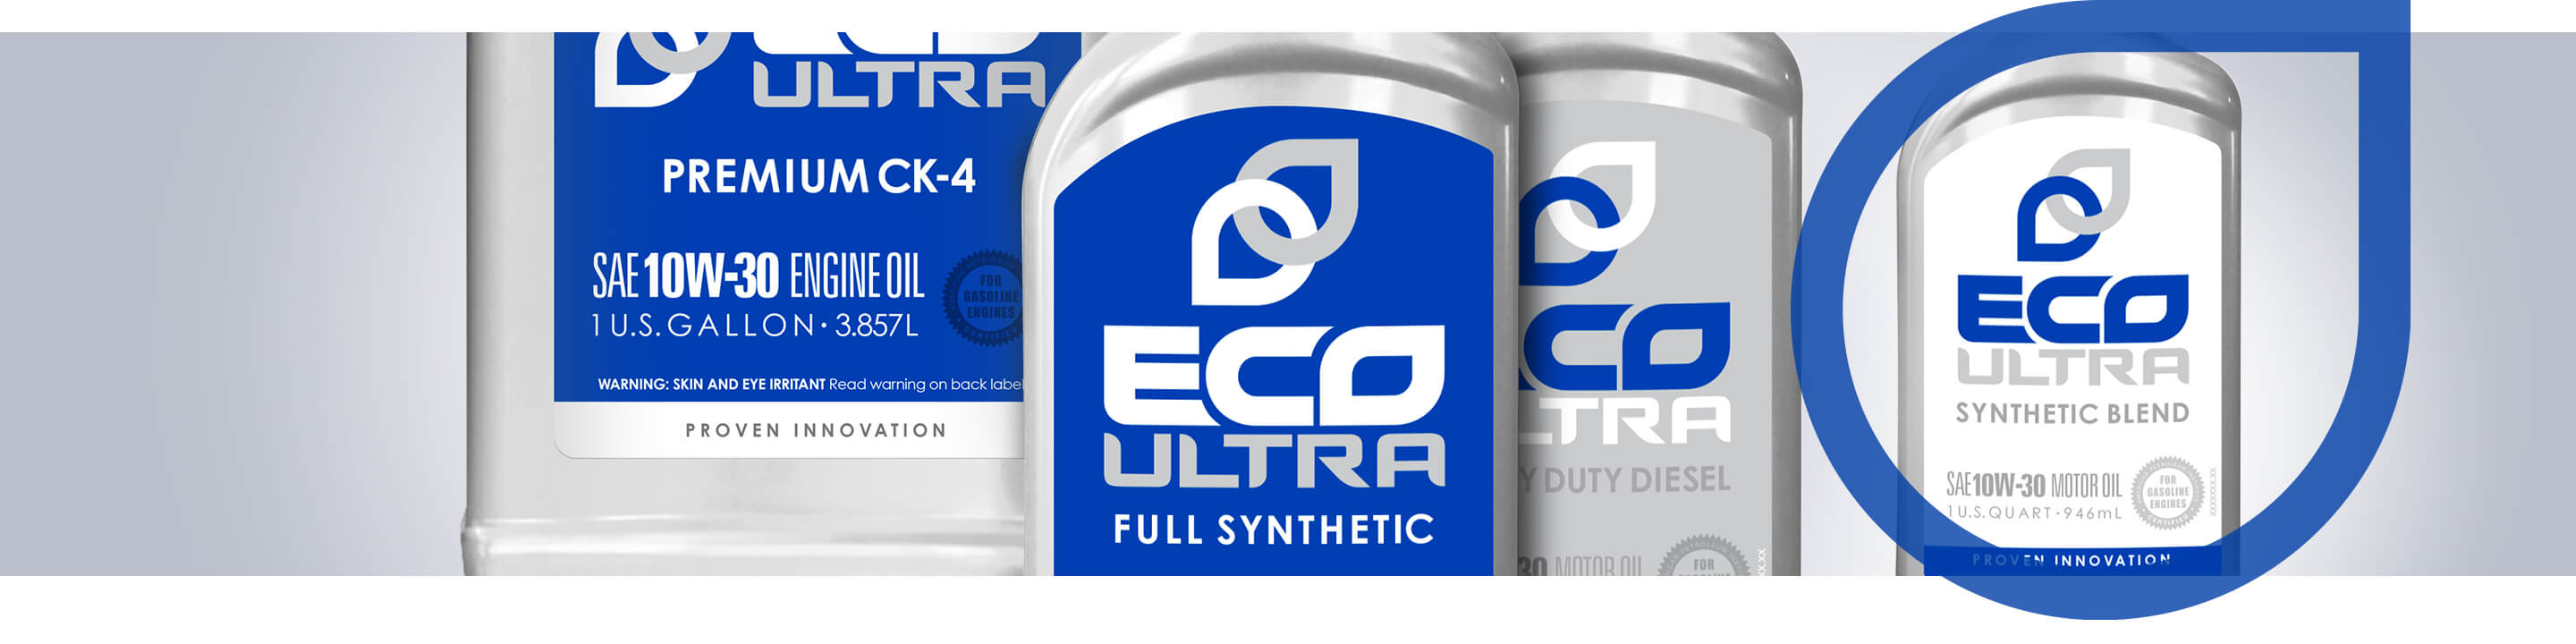 Eco Ultra Packaging Innovation